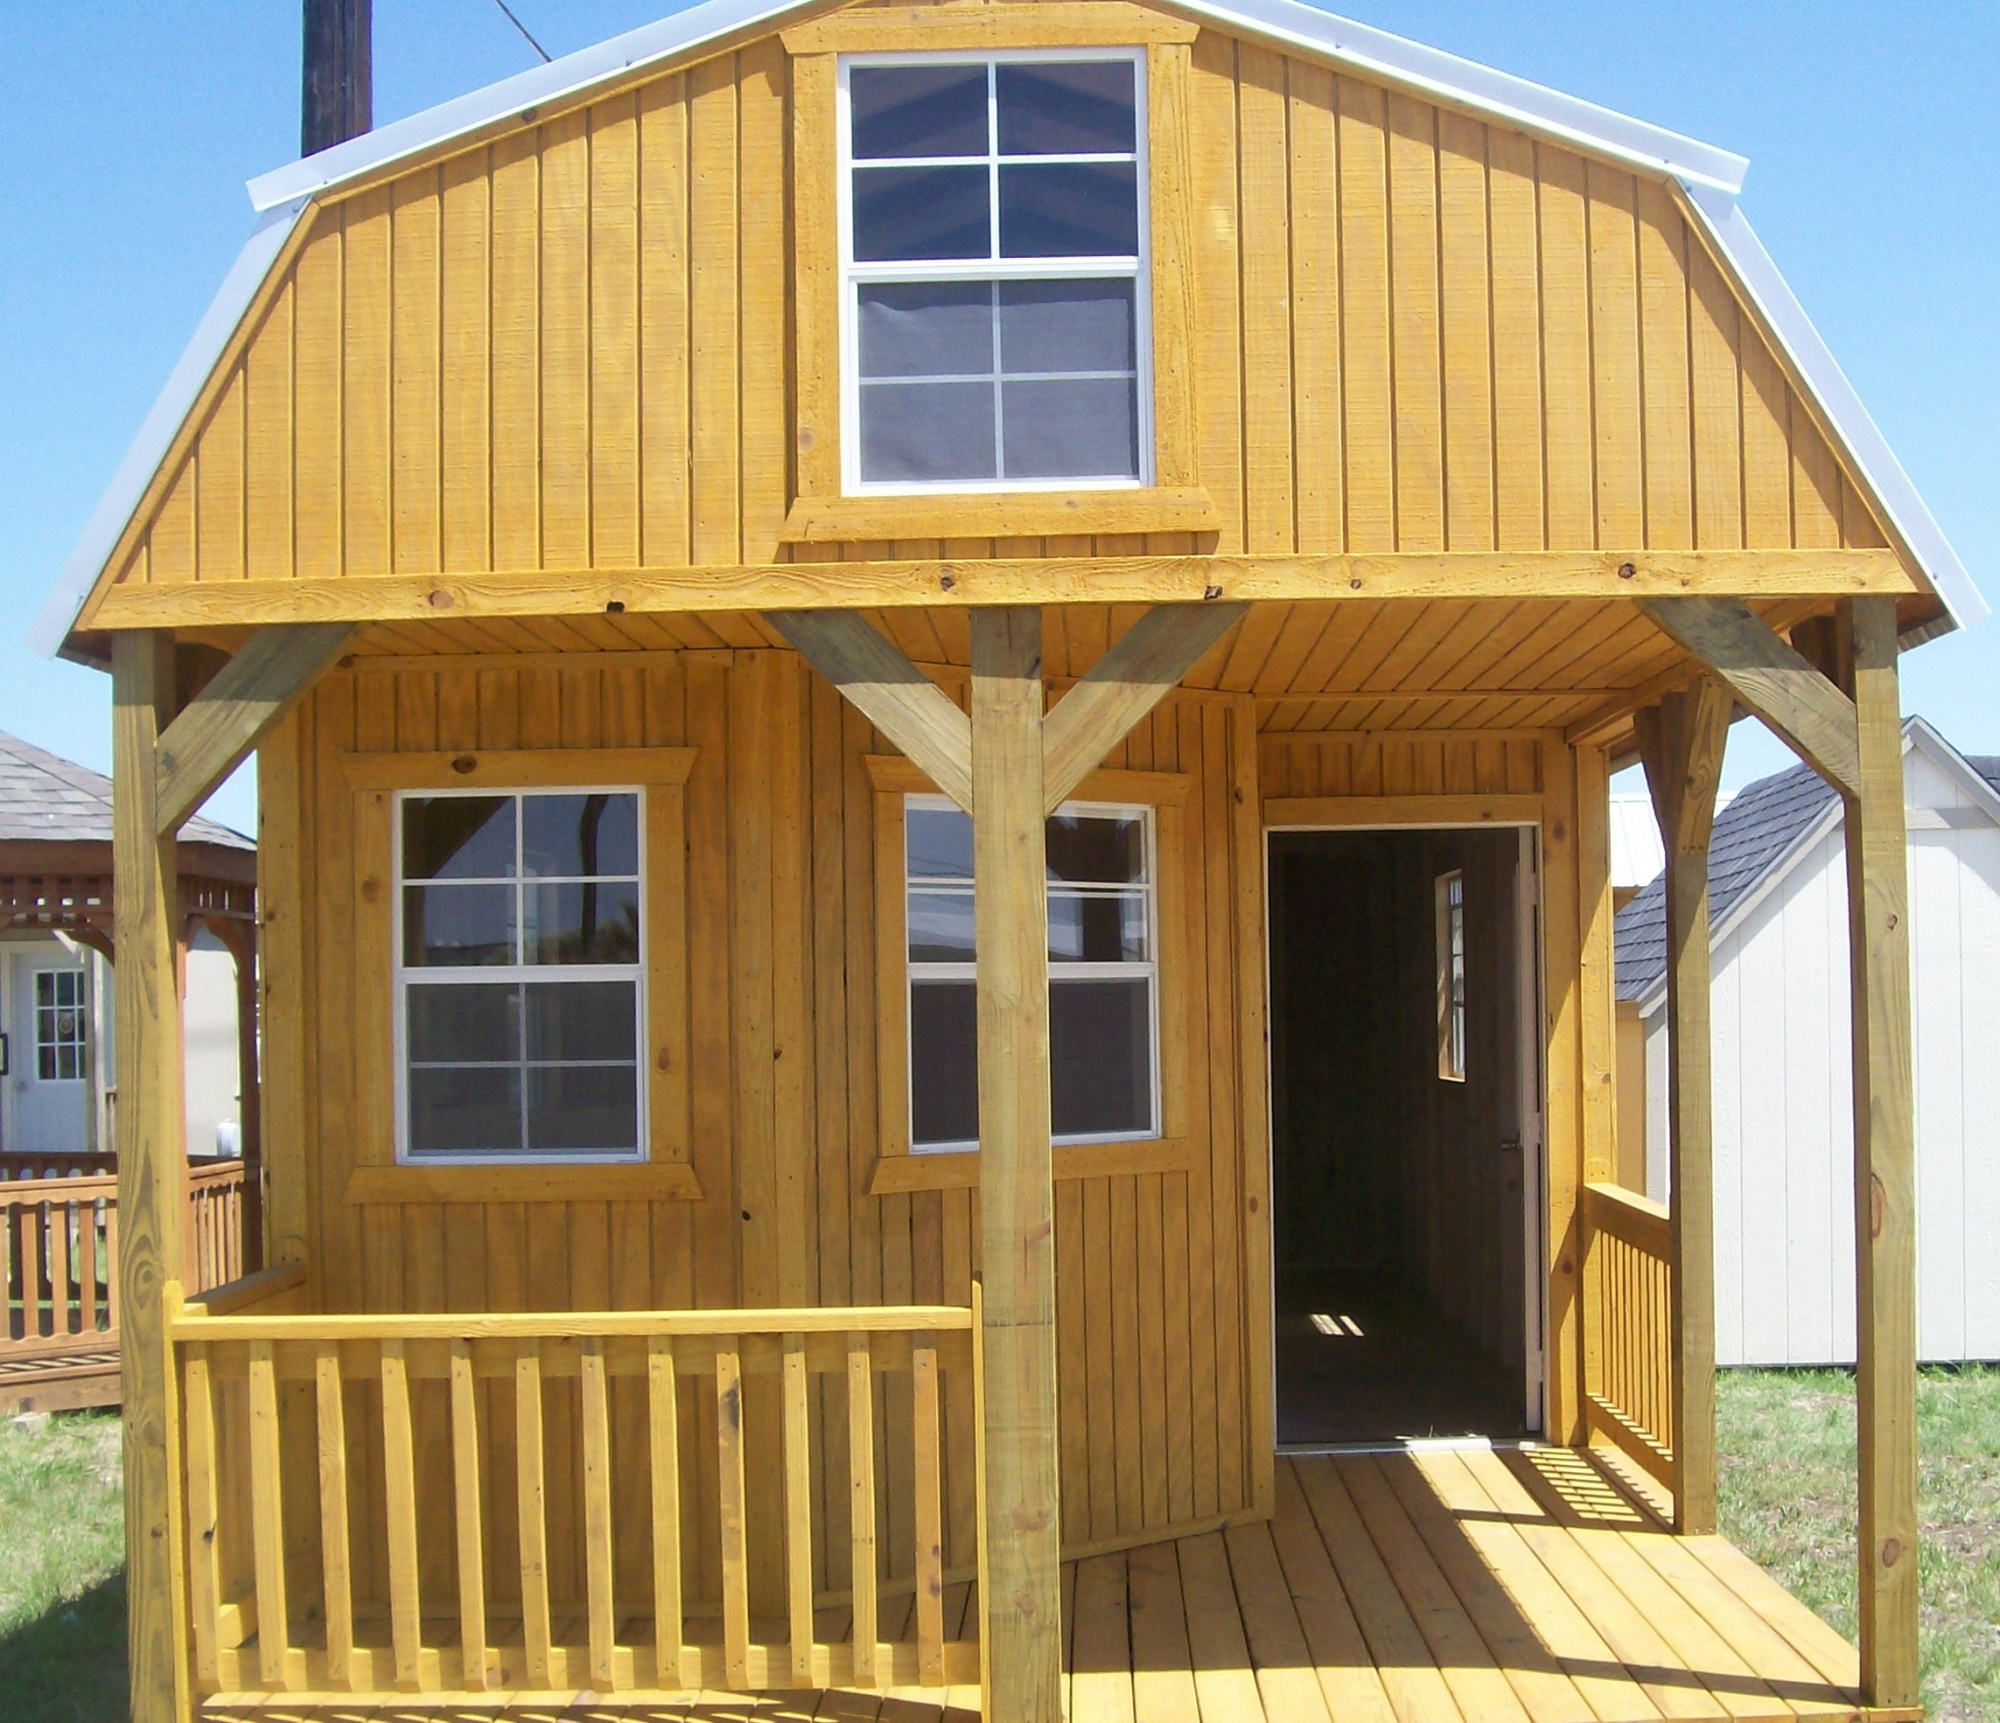 Cabins deluxe cabins lofted barn cabins side lofted barn for Barn cabin plans